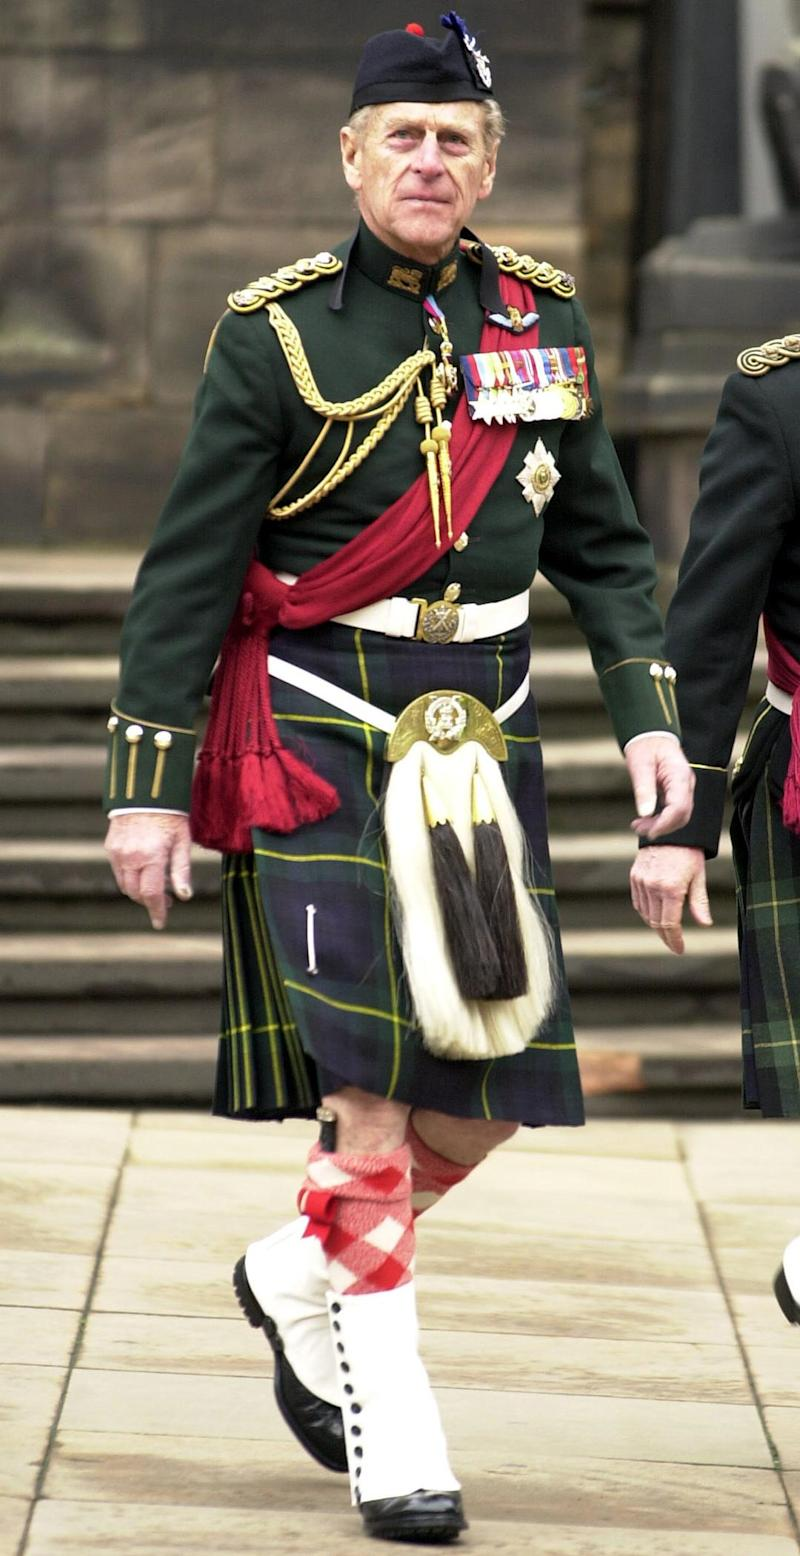 File photo dated 25/11/03 of The Duke of Edinburgh as he arrived at the laying up of the Colours of the Queen's Own Highlanders, to remember fallen soldiers from the regiment, at the Scottish National War Memorial in Crown Square at Edinburgh Castle. The Duke of Edinburgh celebrates his 99th birthday Wednesday.